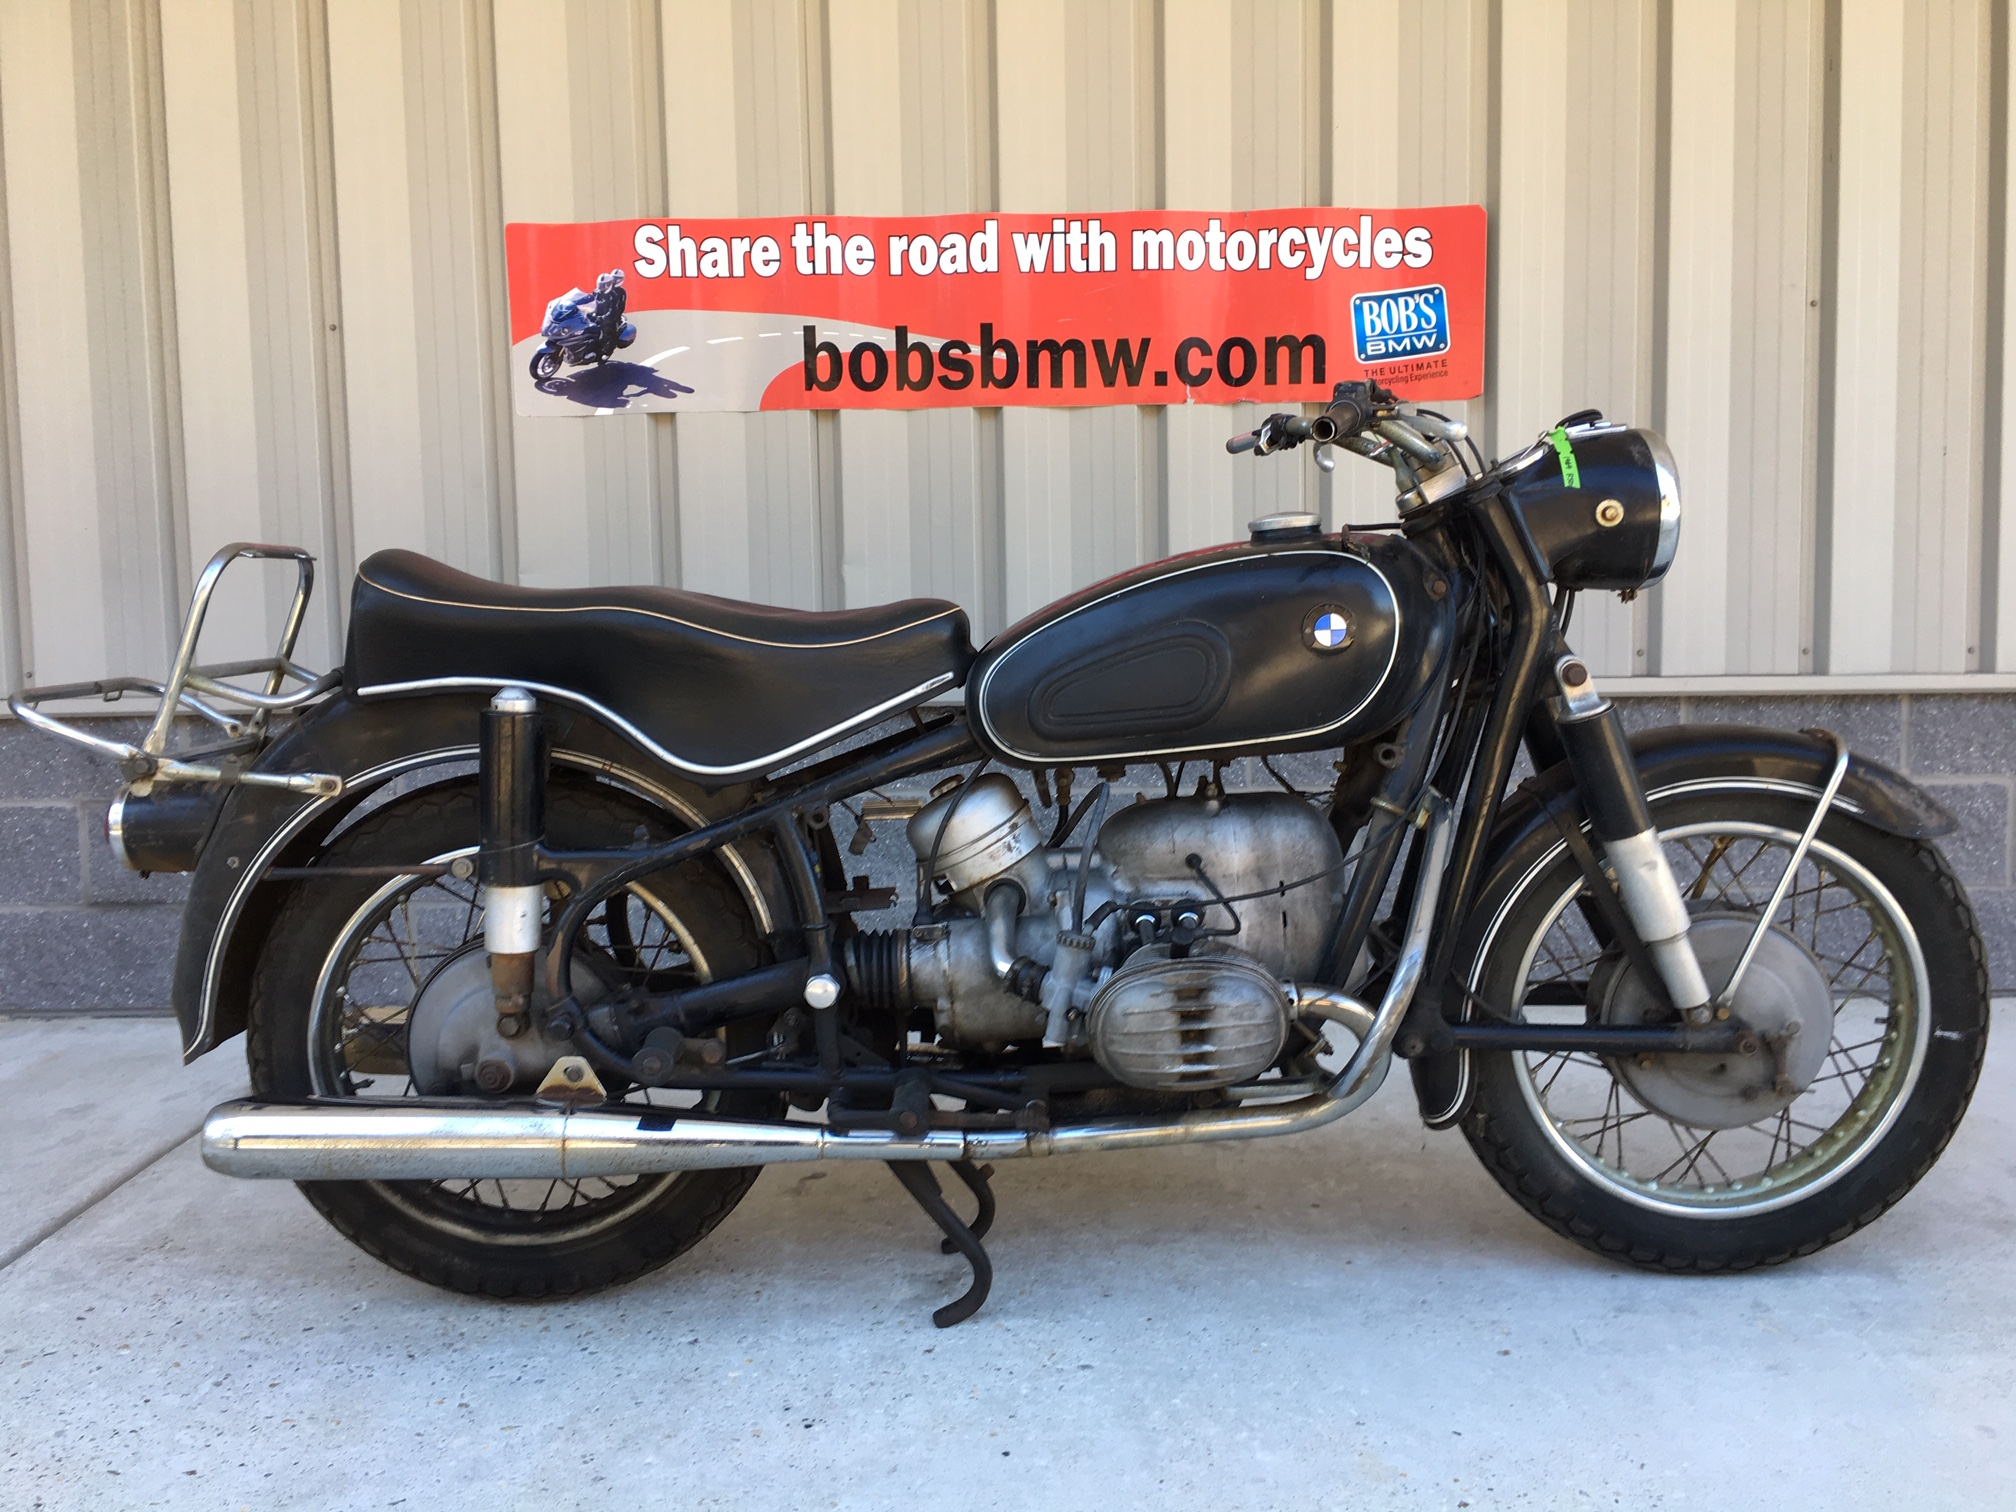 1969* BMW R50/2 Project Bike | Bob's BMW Motorcycles